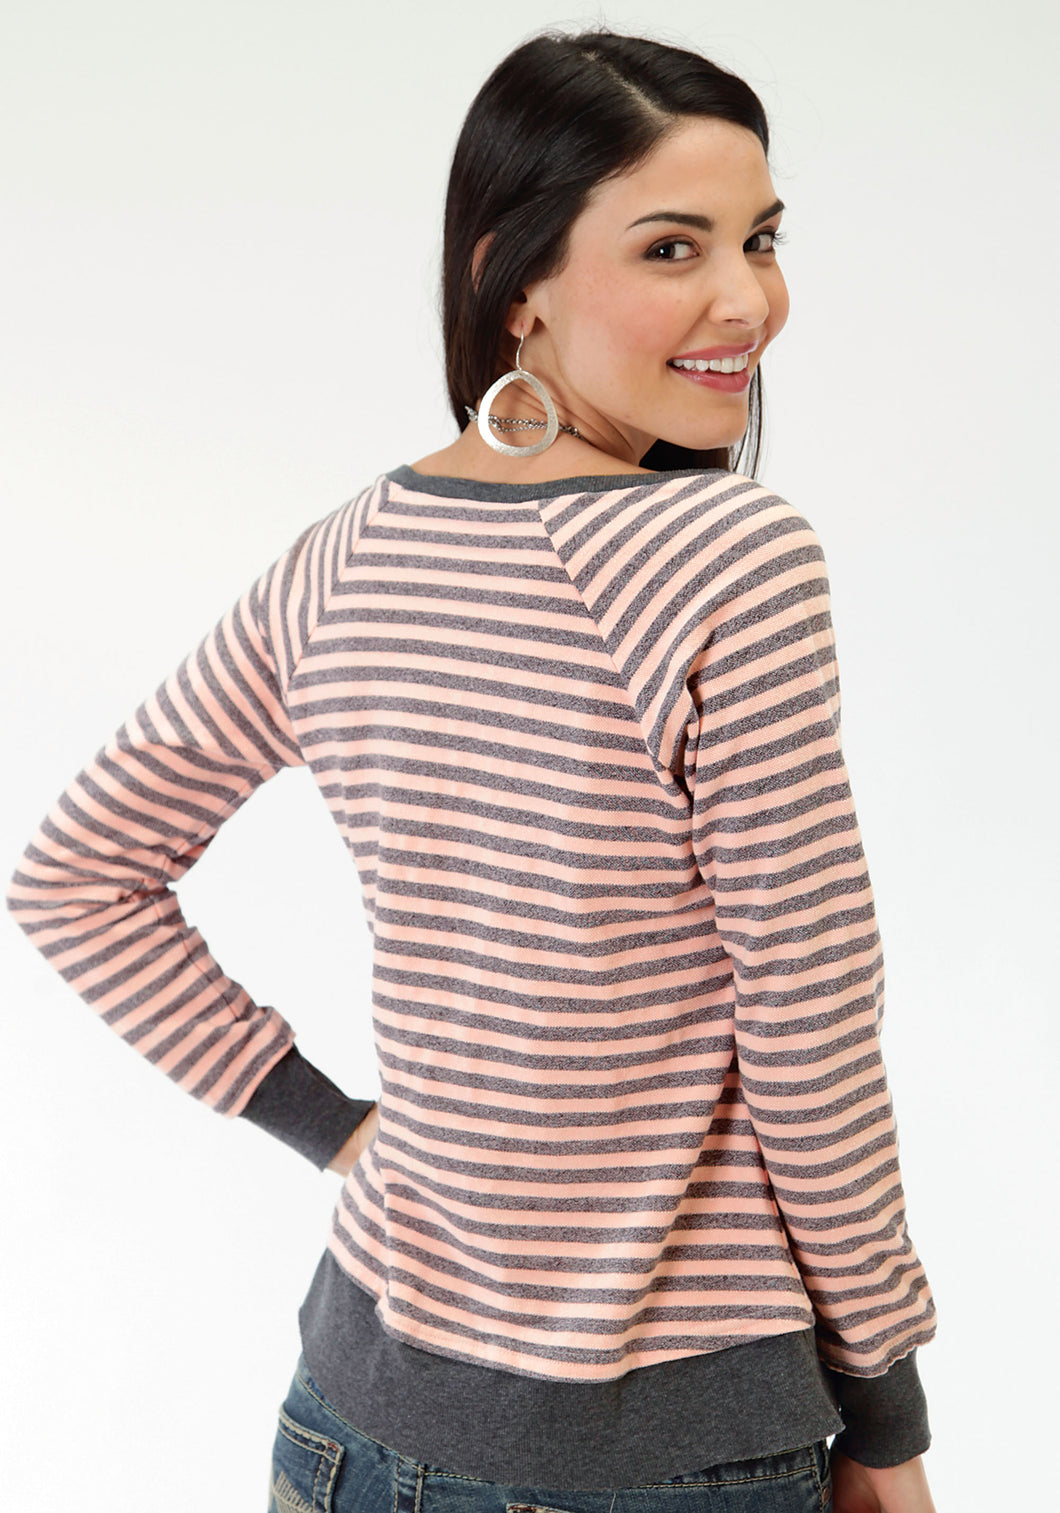 Five Star- Retro Pop 5star Womens Long Sleeve Shirt 0571 Pique Stripe Tee